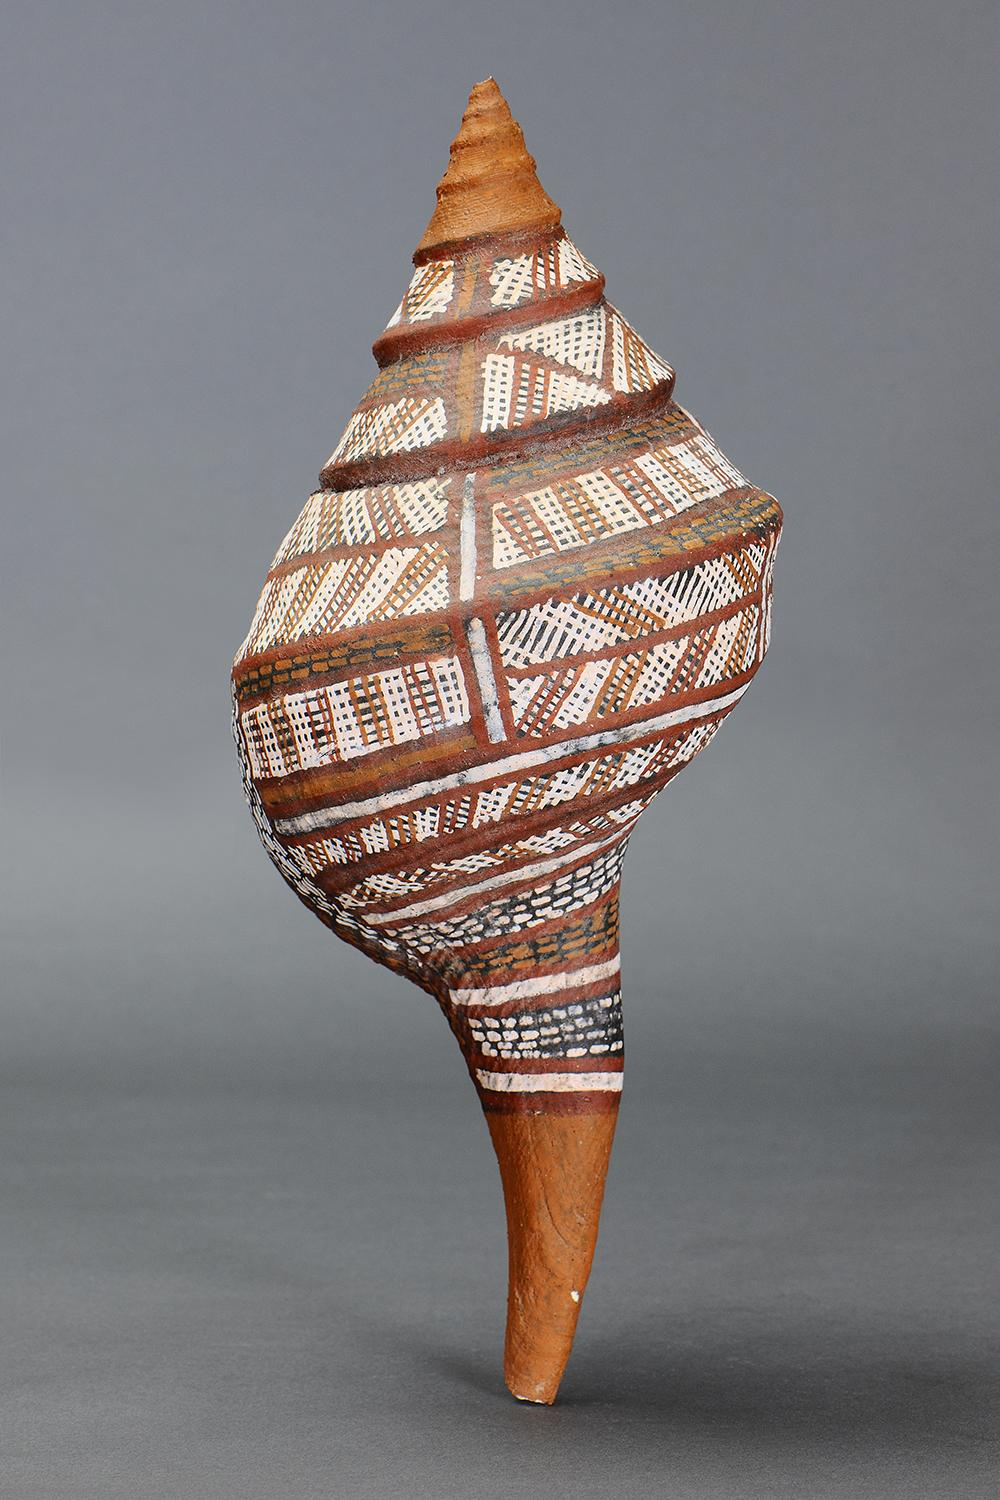 SUPERB LARGE PAINTED TRUMPET SHELL, GROOTE EYLANDT, NORTHERN TERRITORY